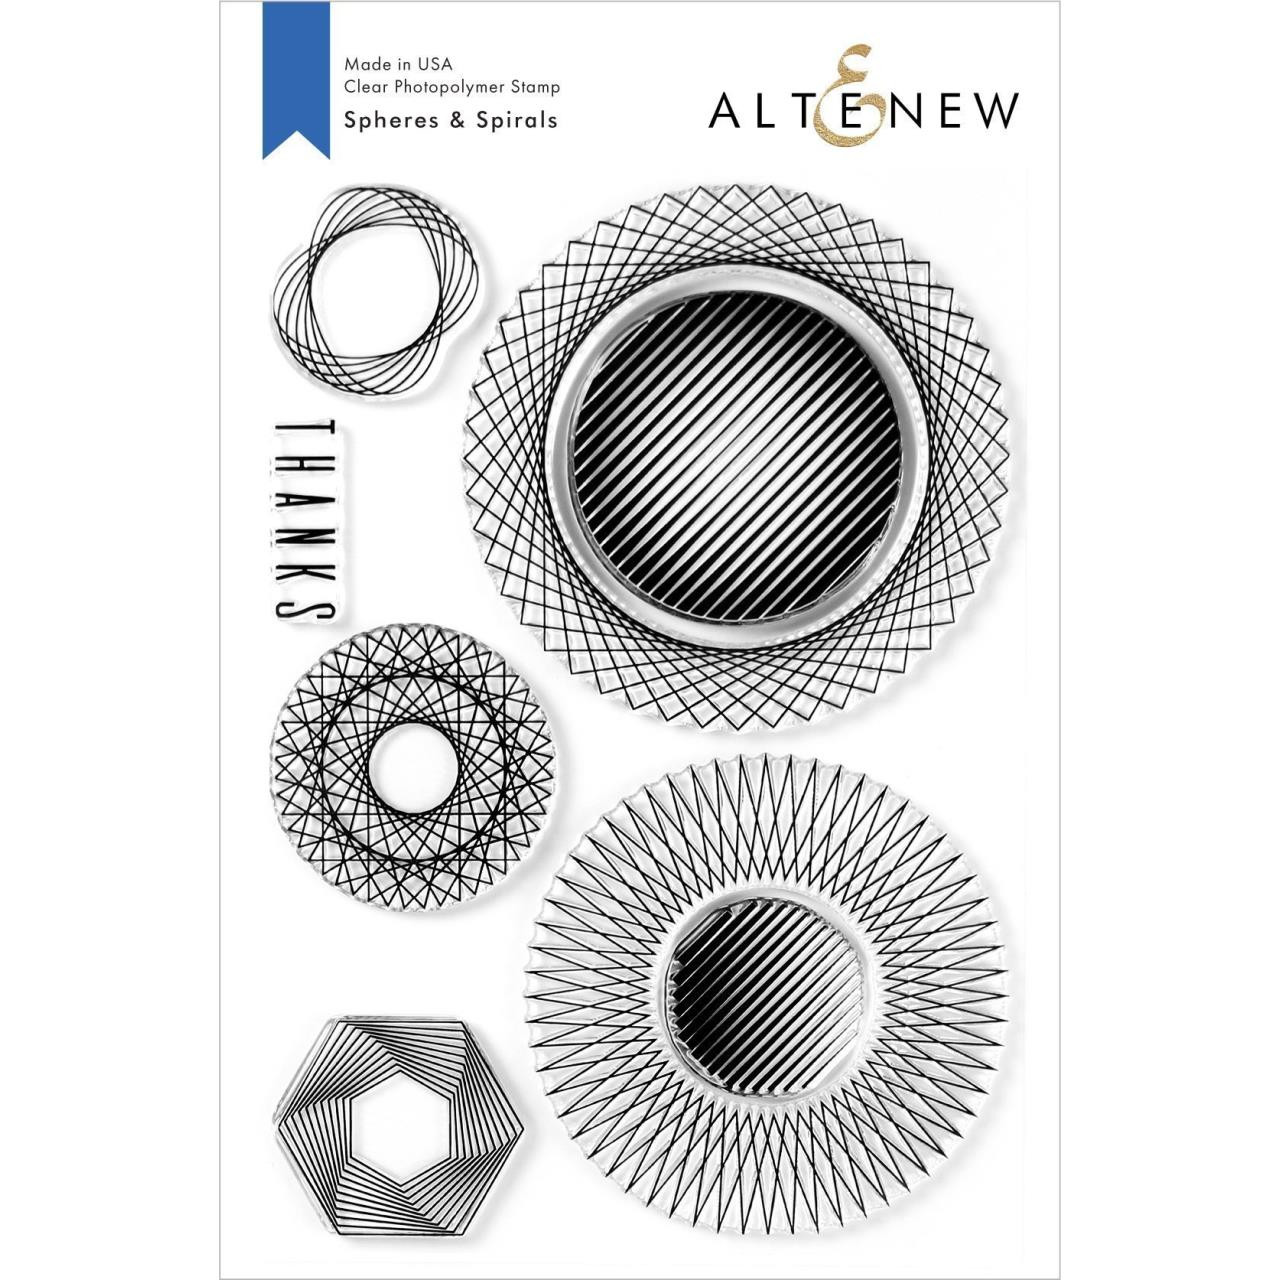 Spheres & Spirals, Altenew Clear Stamps - 737787261040